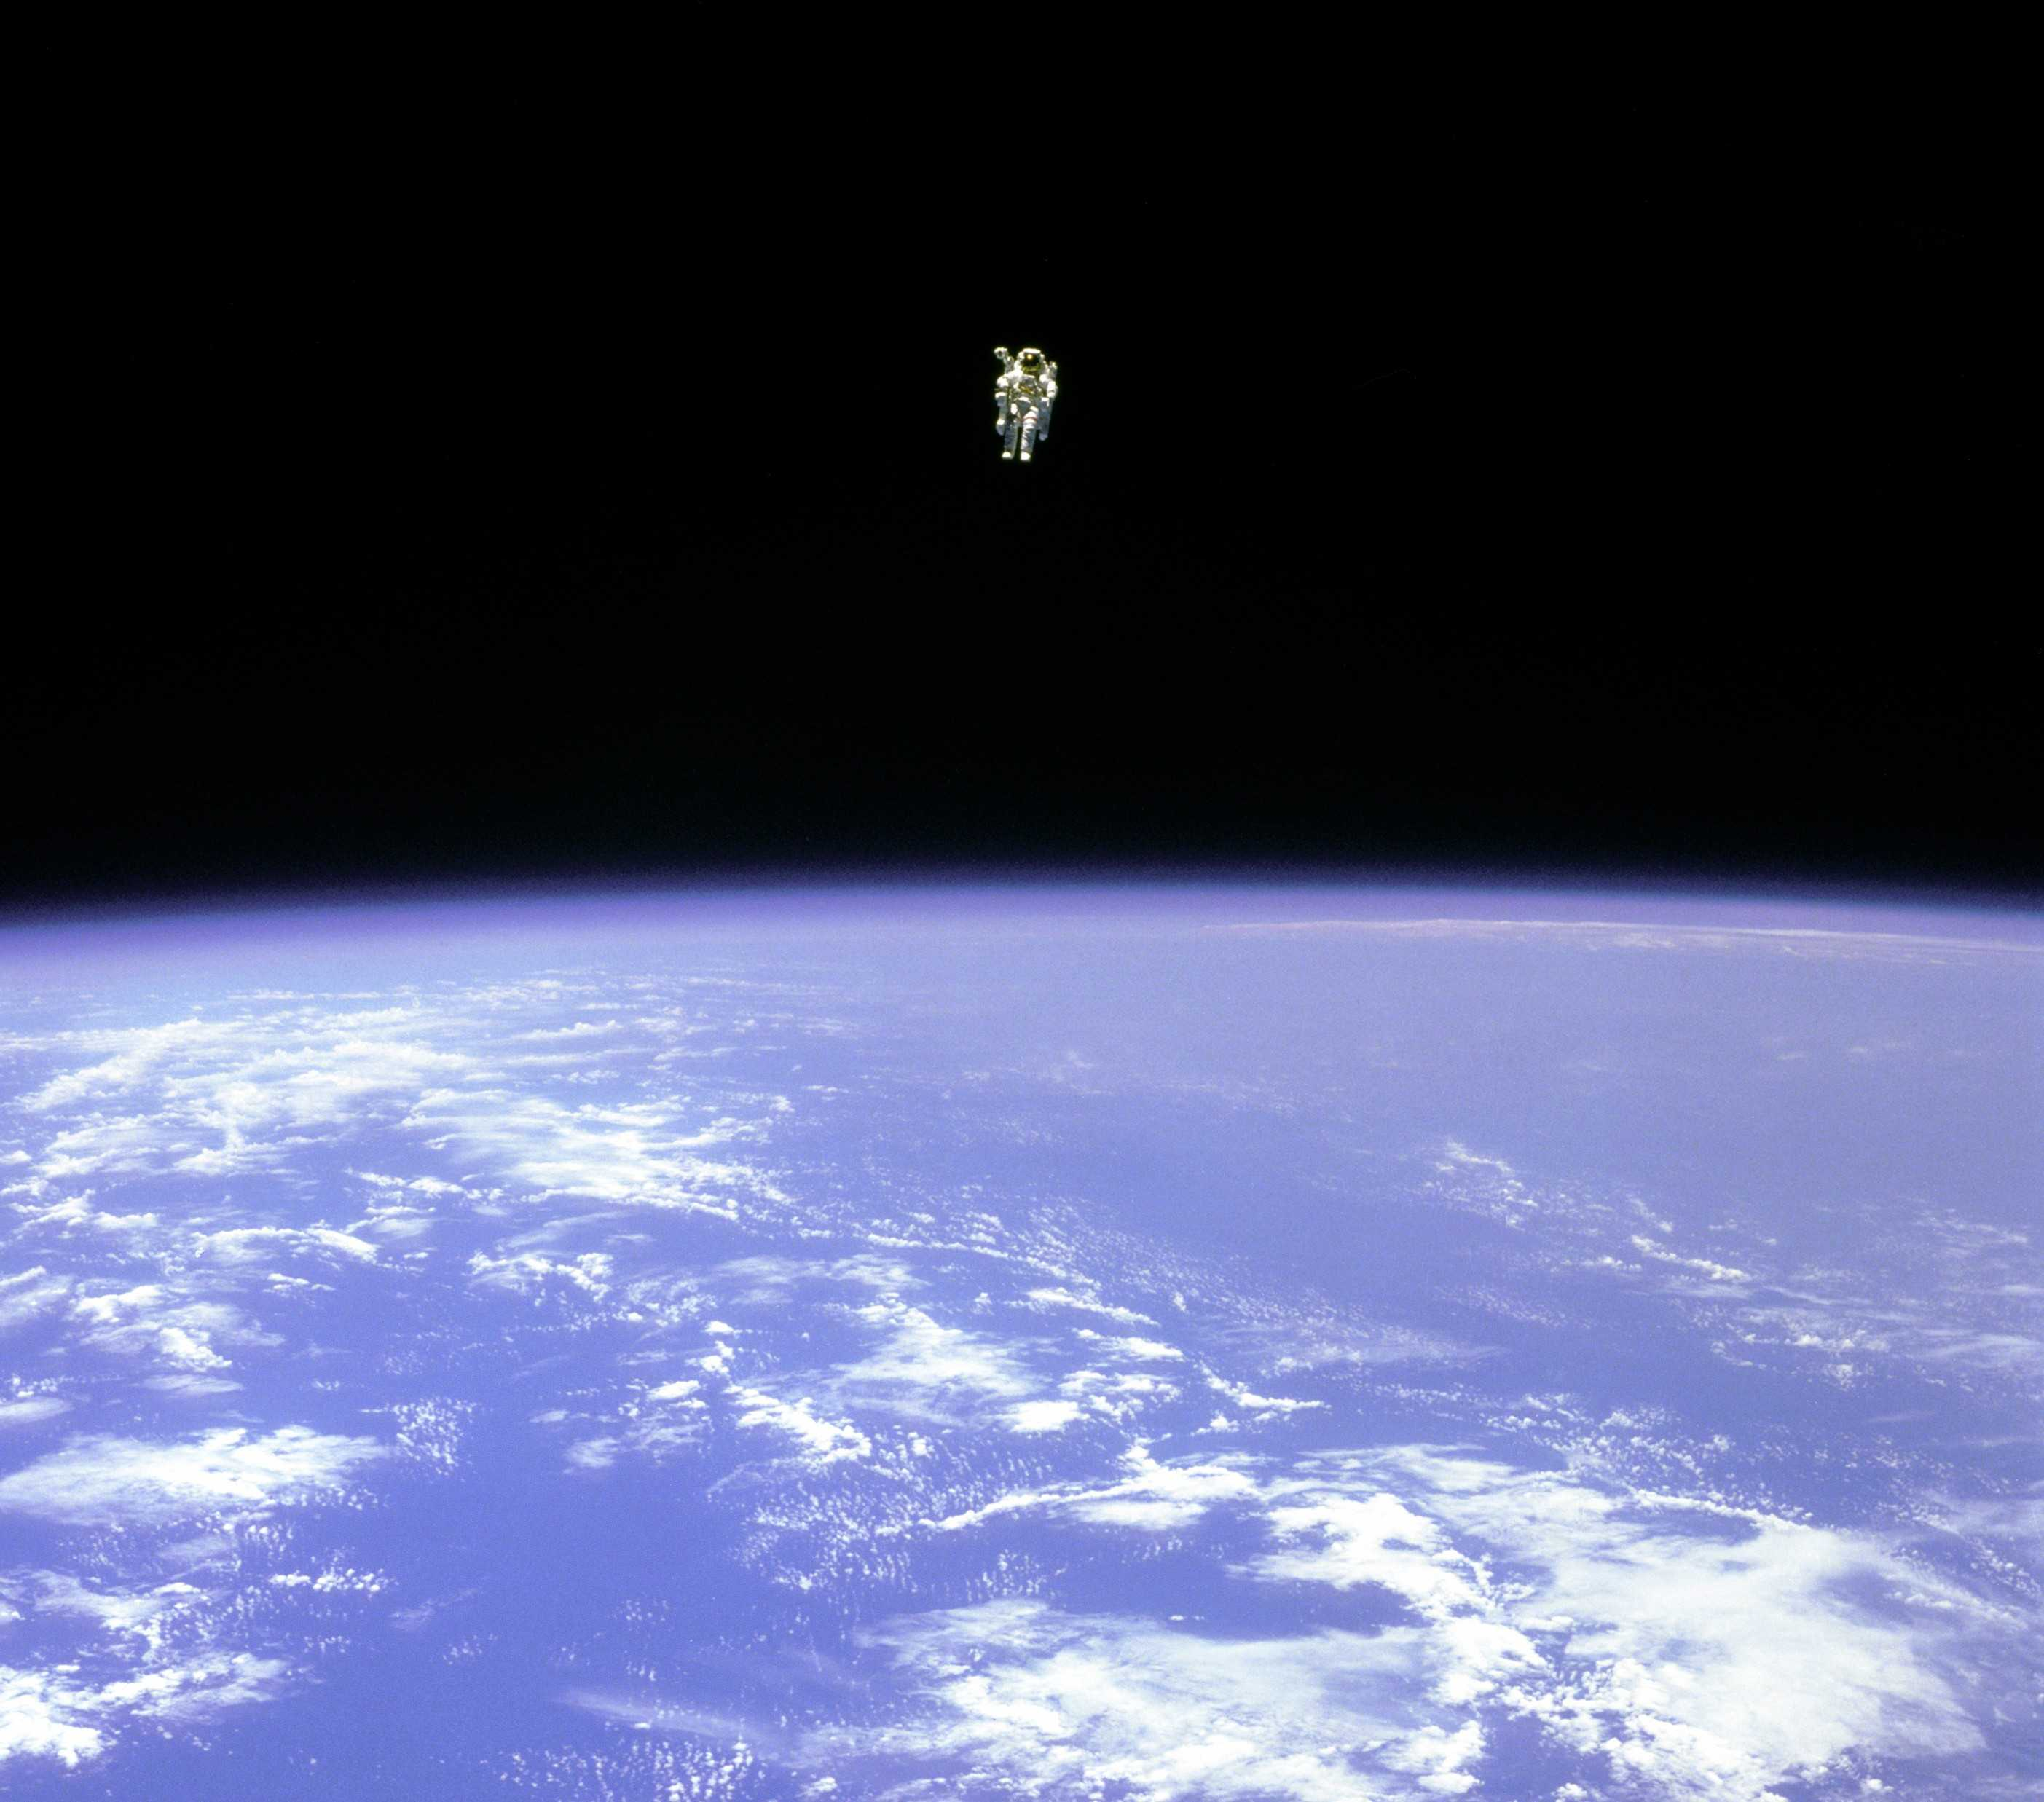 astronaut Bruce McCandless II free floating in a spacesuit over the earth